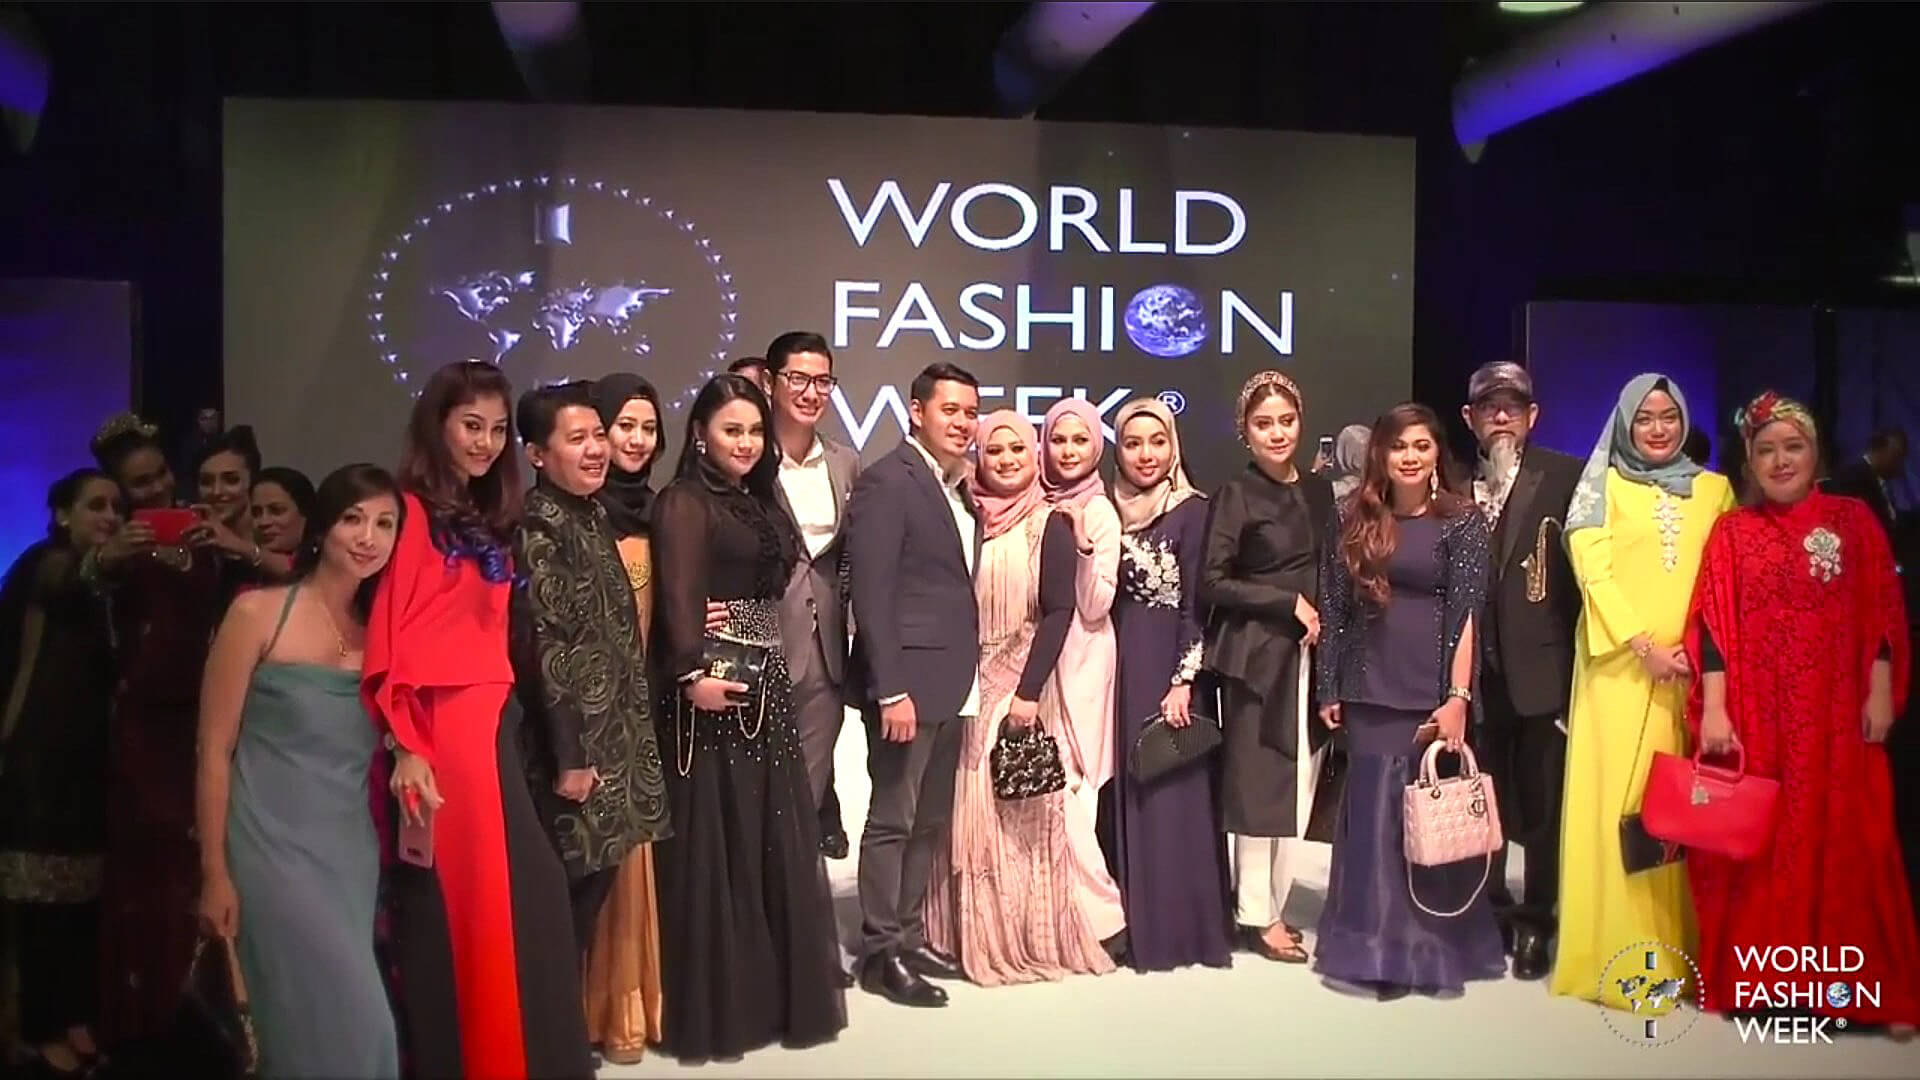 World Fashion Week<sup>®</sup> Asia 2017 celebrated cultural diversity & the beauty, power & artistic global movement of fashion